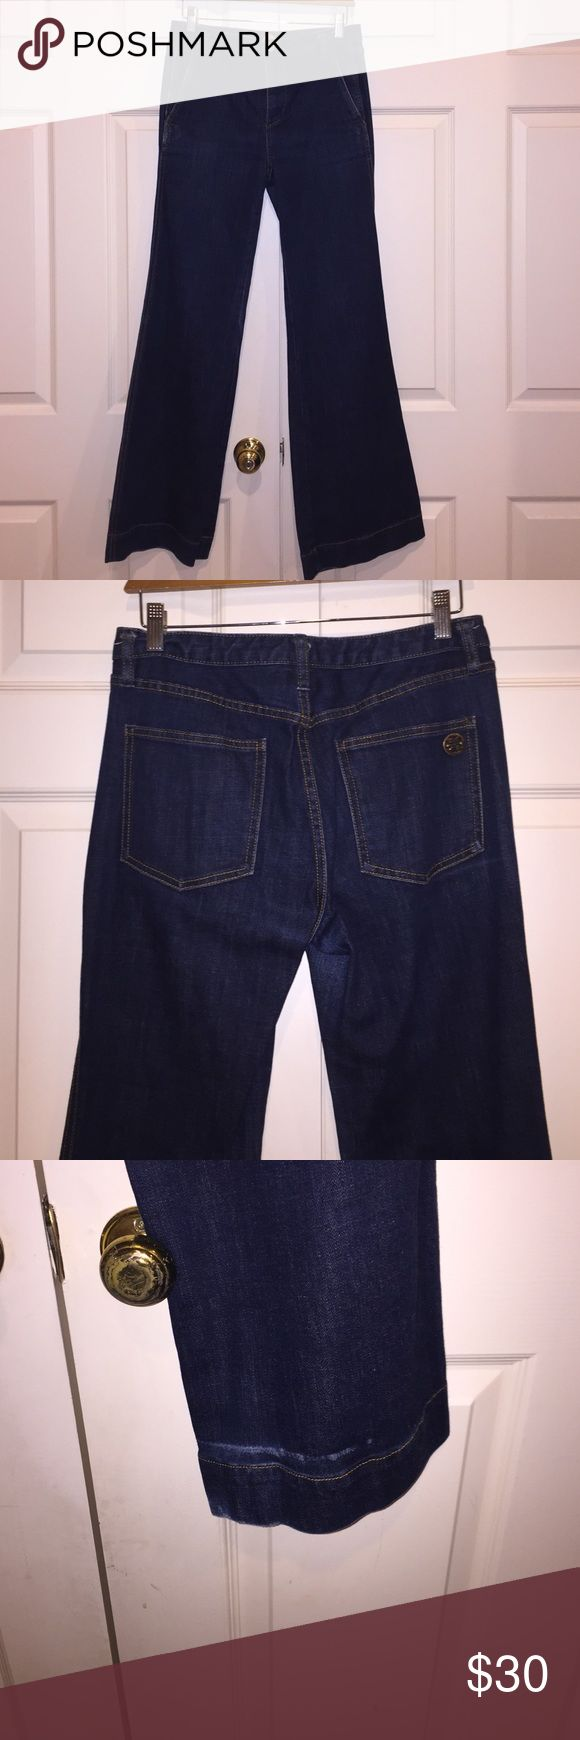 Tory Burch Flare Leg jeans Pair these jeans with a tunic or a slim fitting top for a 70's vibe that Tory is known for!  I kept these in great condition, just a little wear towards the bottom.  Reasonable offers will be accepted! Tory Burch Jeans Flare & Wide Leg